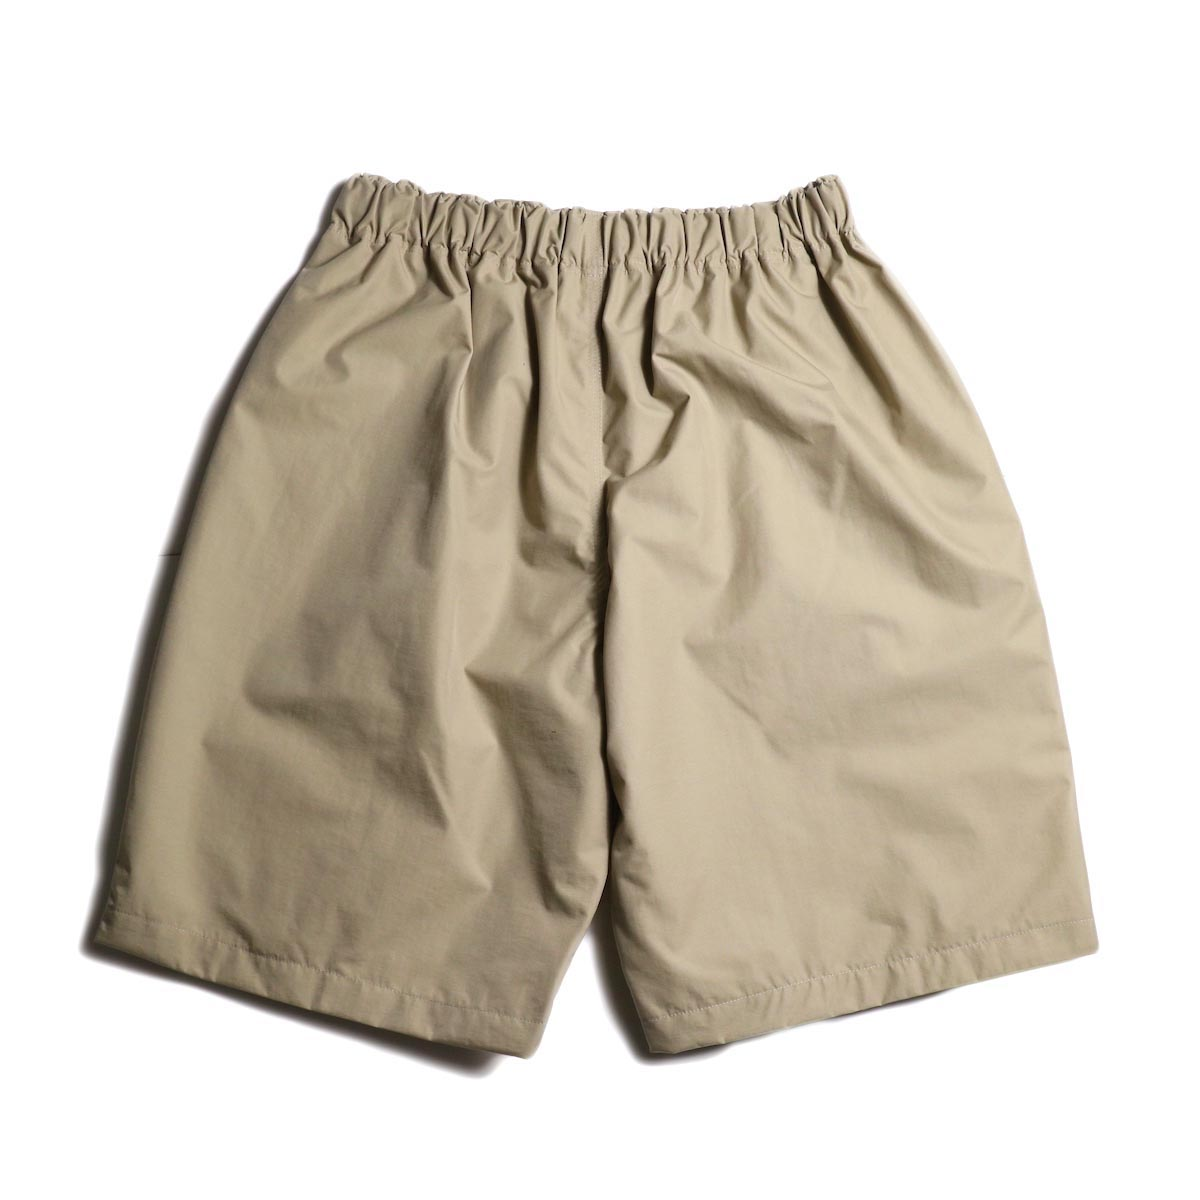 SOUTH2 WEST8 / Belted Center Seam Short -Nylon Tussore (Beige)背面